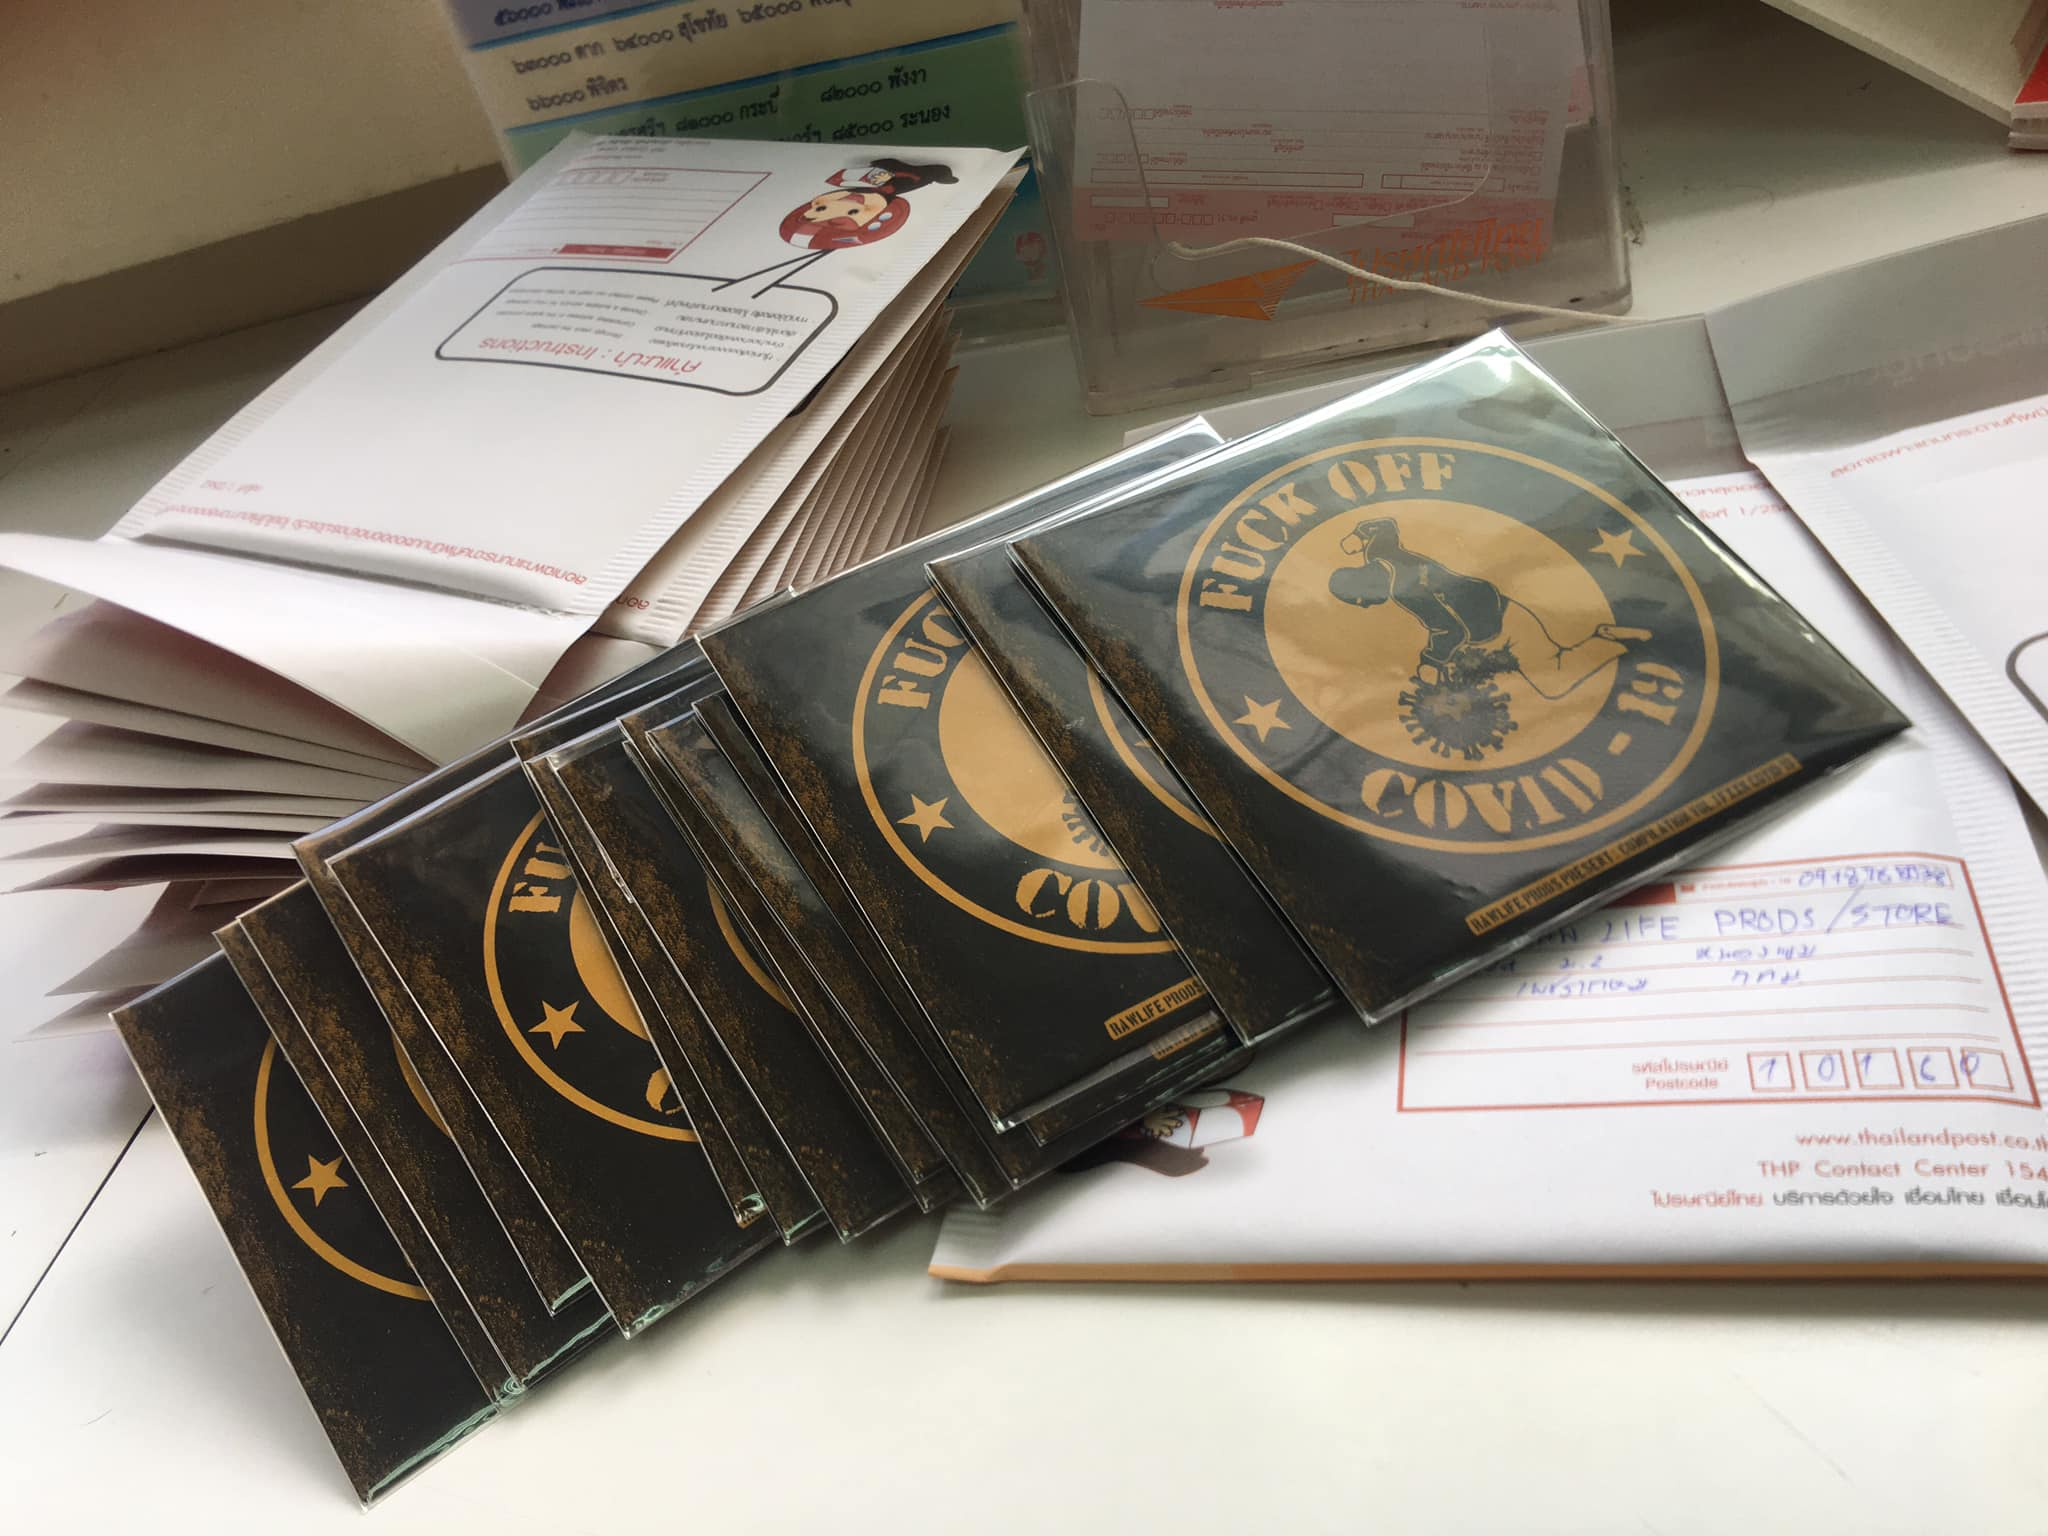 Raw Life Prods Compilation CD